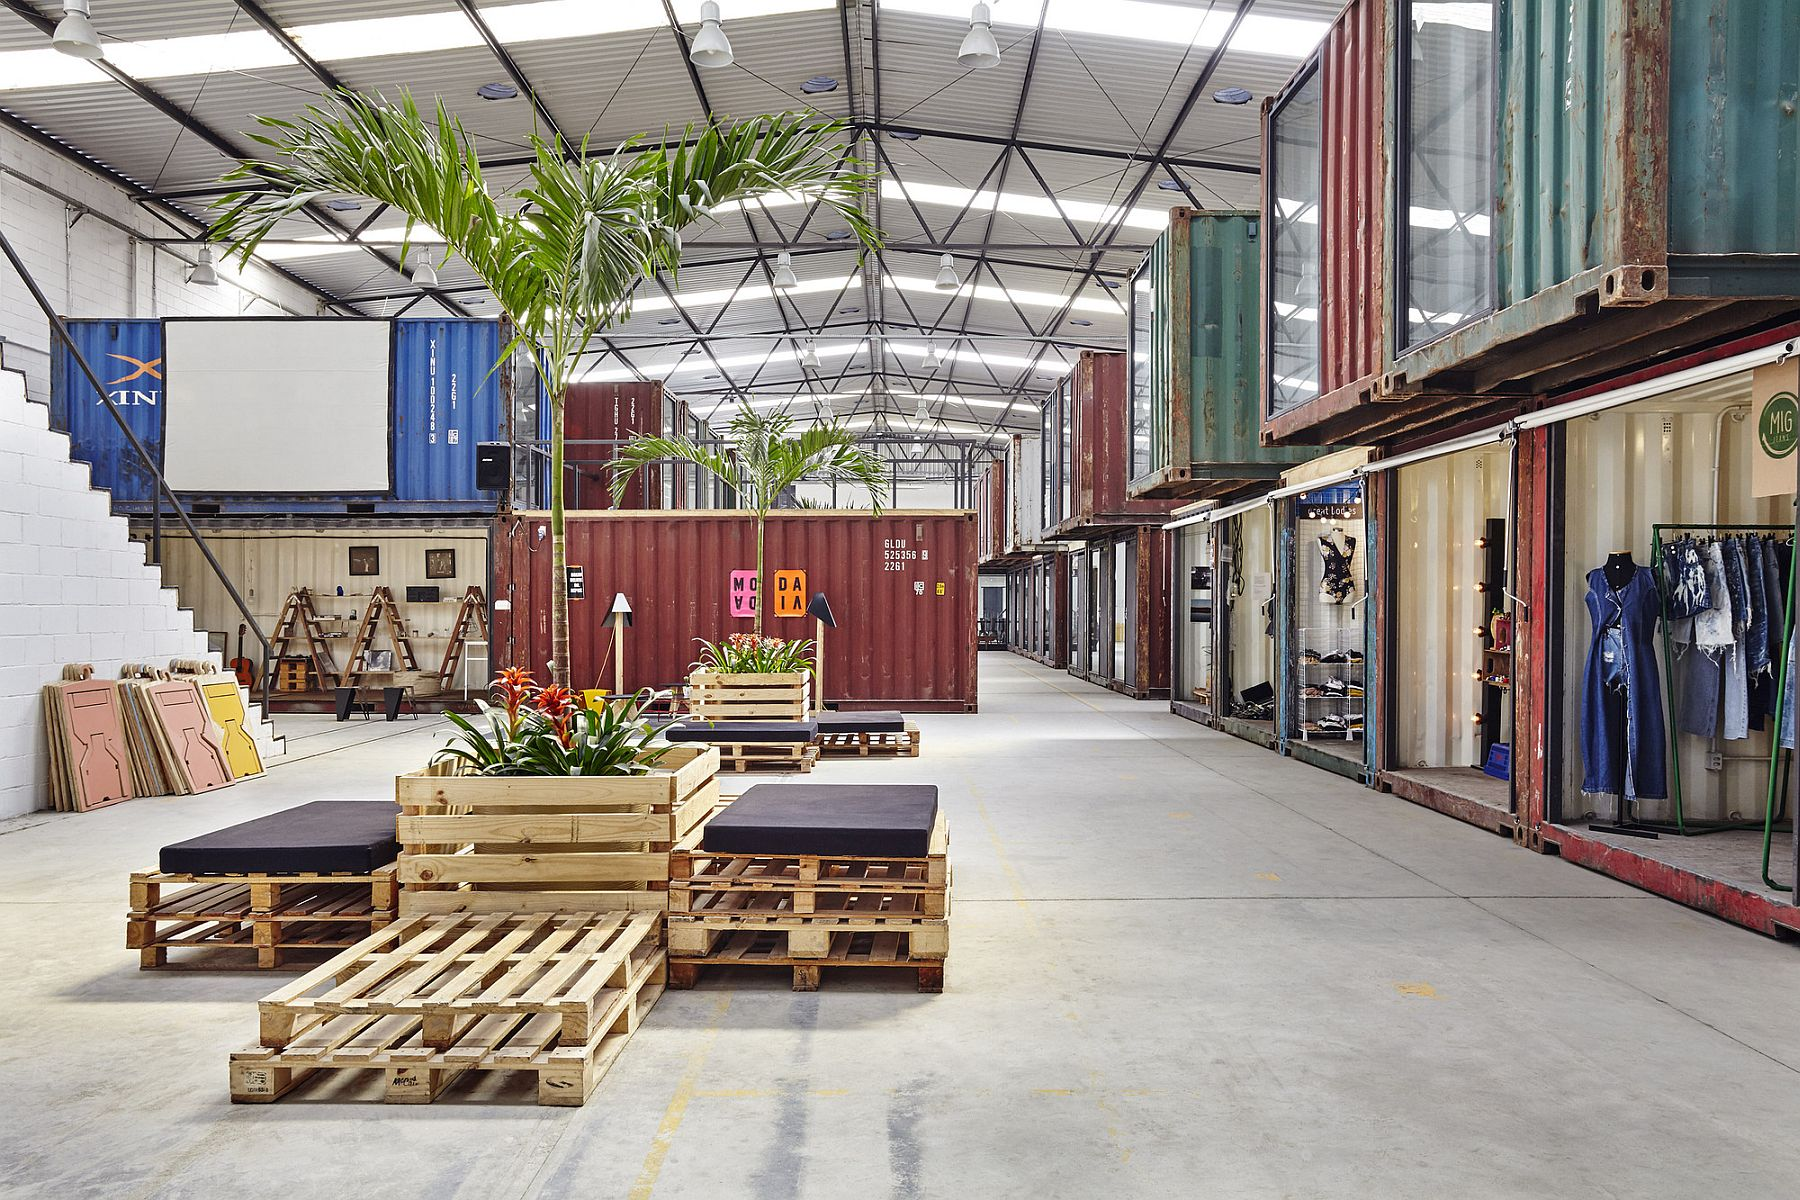 Large warehouse in Rio filled with repurposed containers creates new age trend in the fashion world 42 Repurposed Containers Inside a Warehouse Reshape Rio's Fashion Scene!